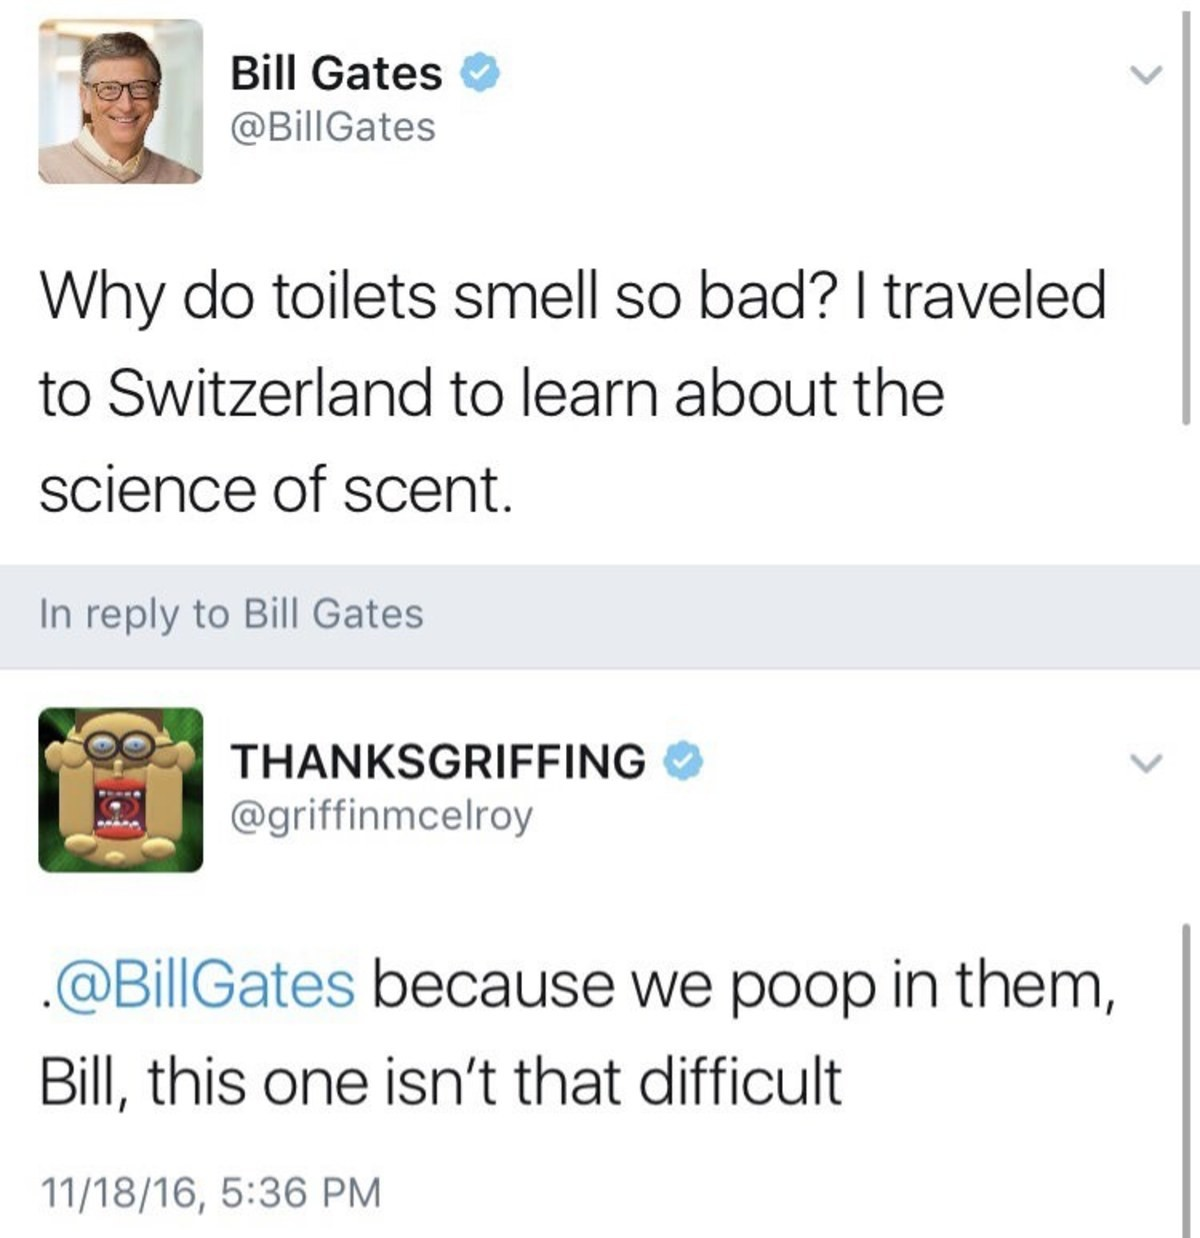 Take a guess. . Bill Gates (ti) k @Billgates l/ l/ ' do toilets smell so t: xnyd'? I traveled to Switzerland to learn about the science of scent. In reply to Bi